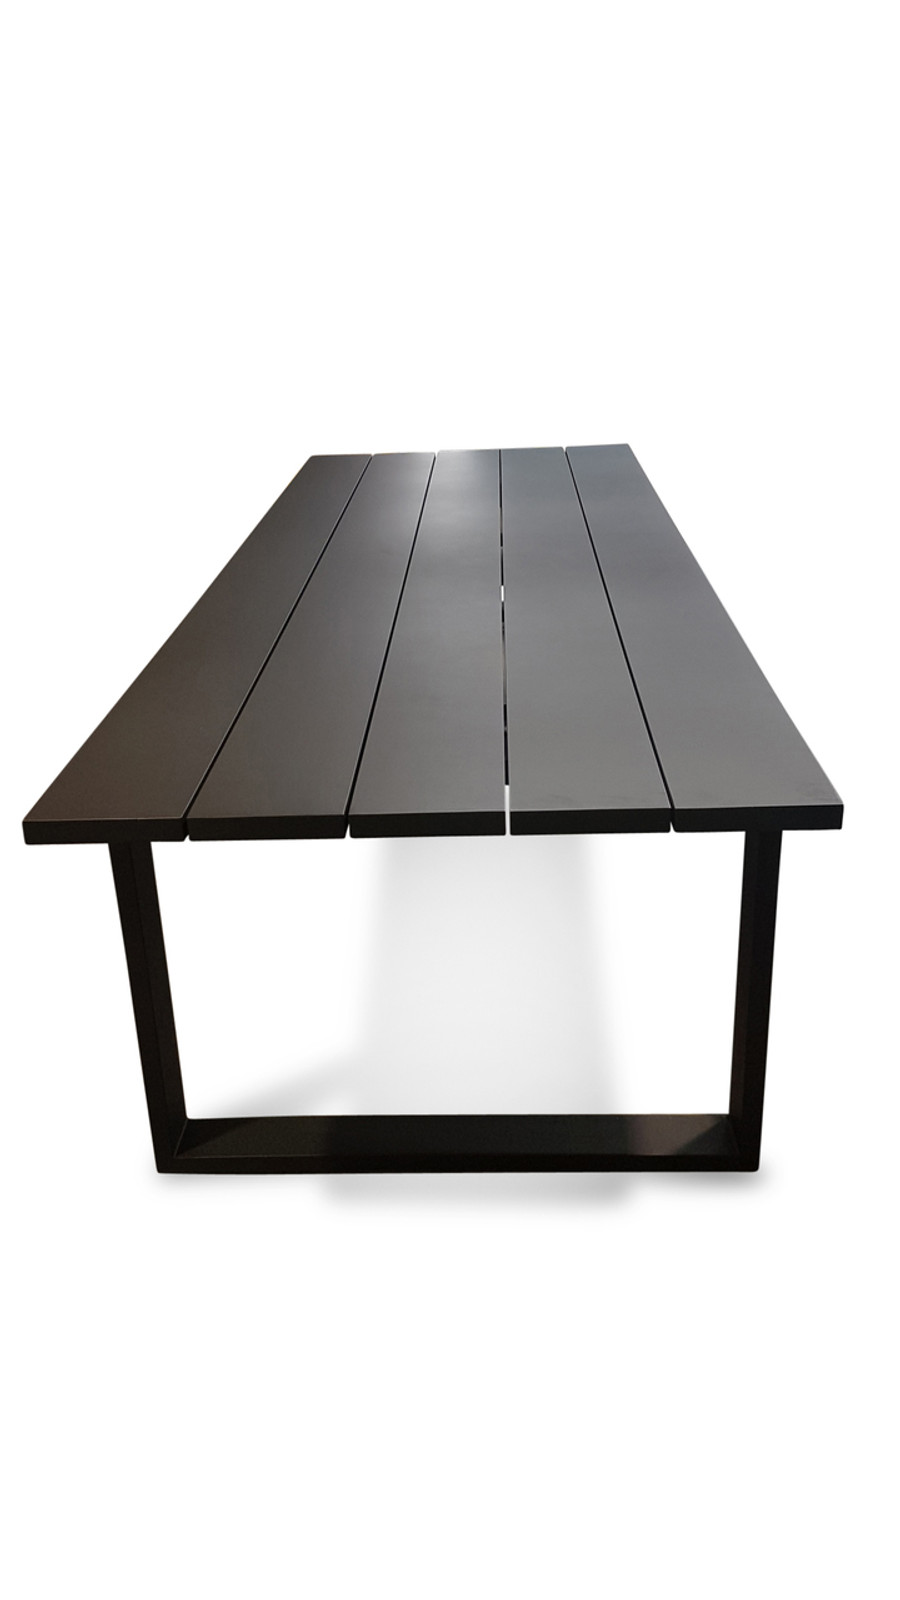 Fermo Outdoor Dining Table 270x102 Aluminium - White Or Charcoal